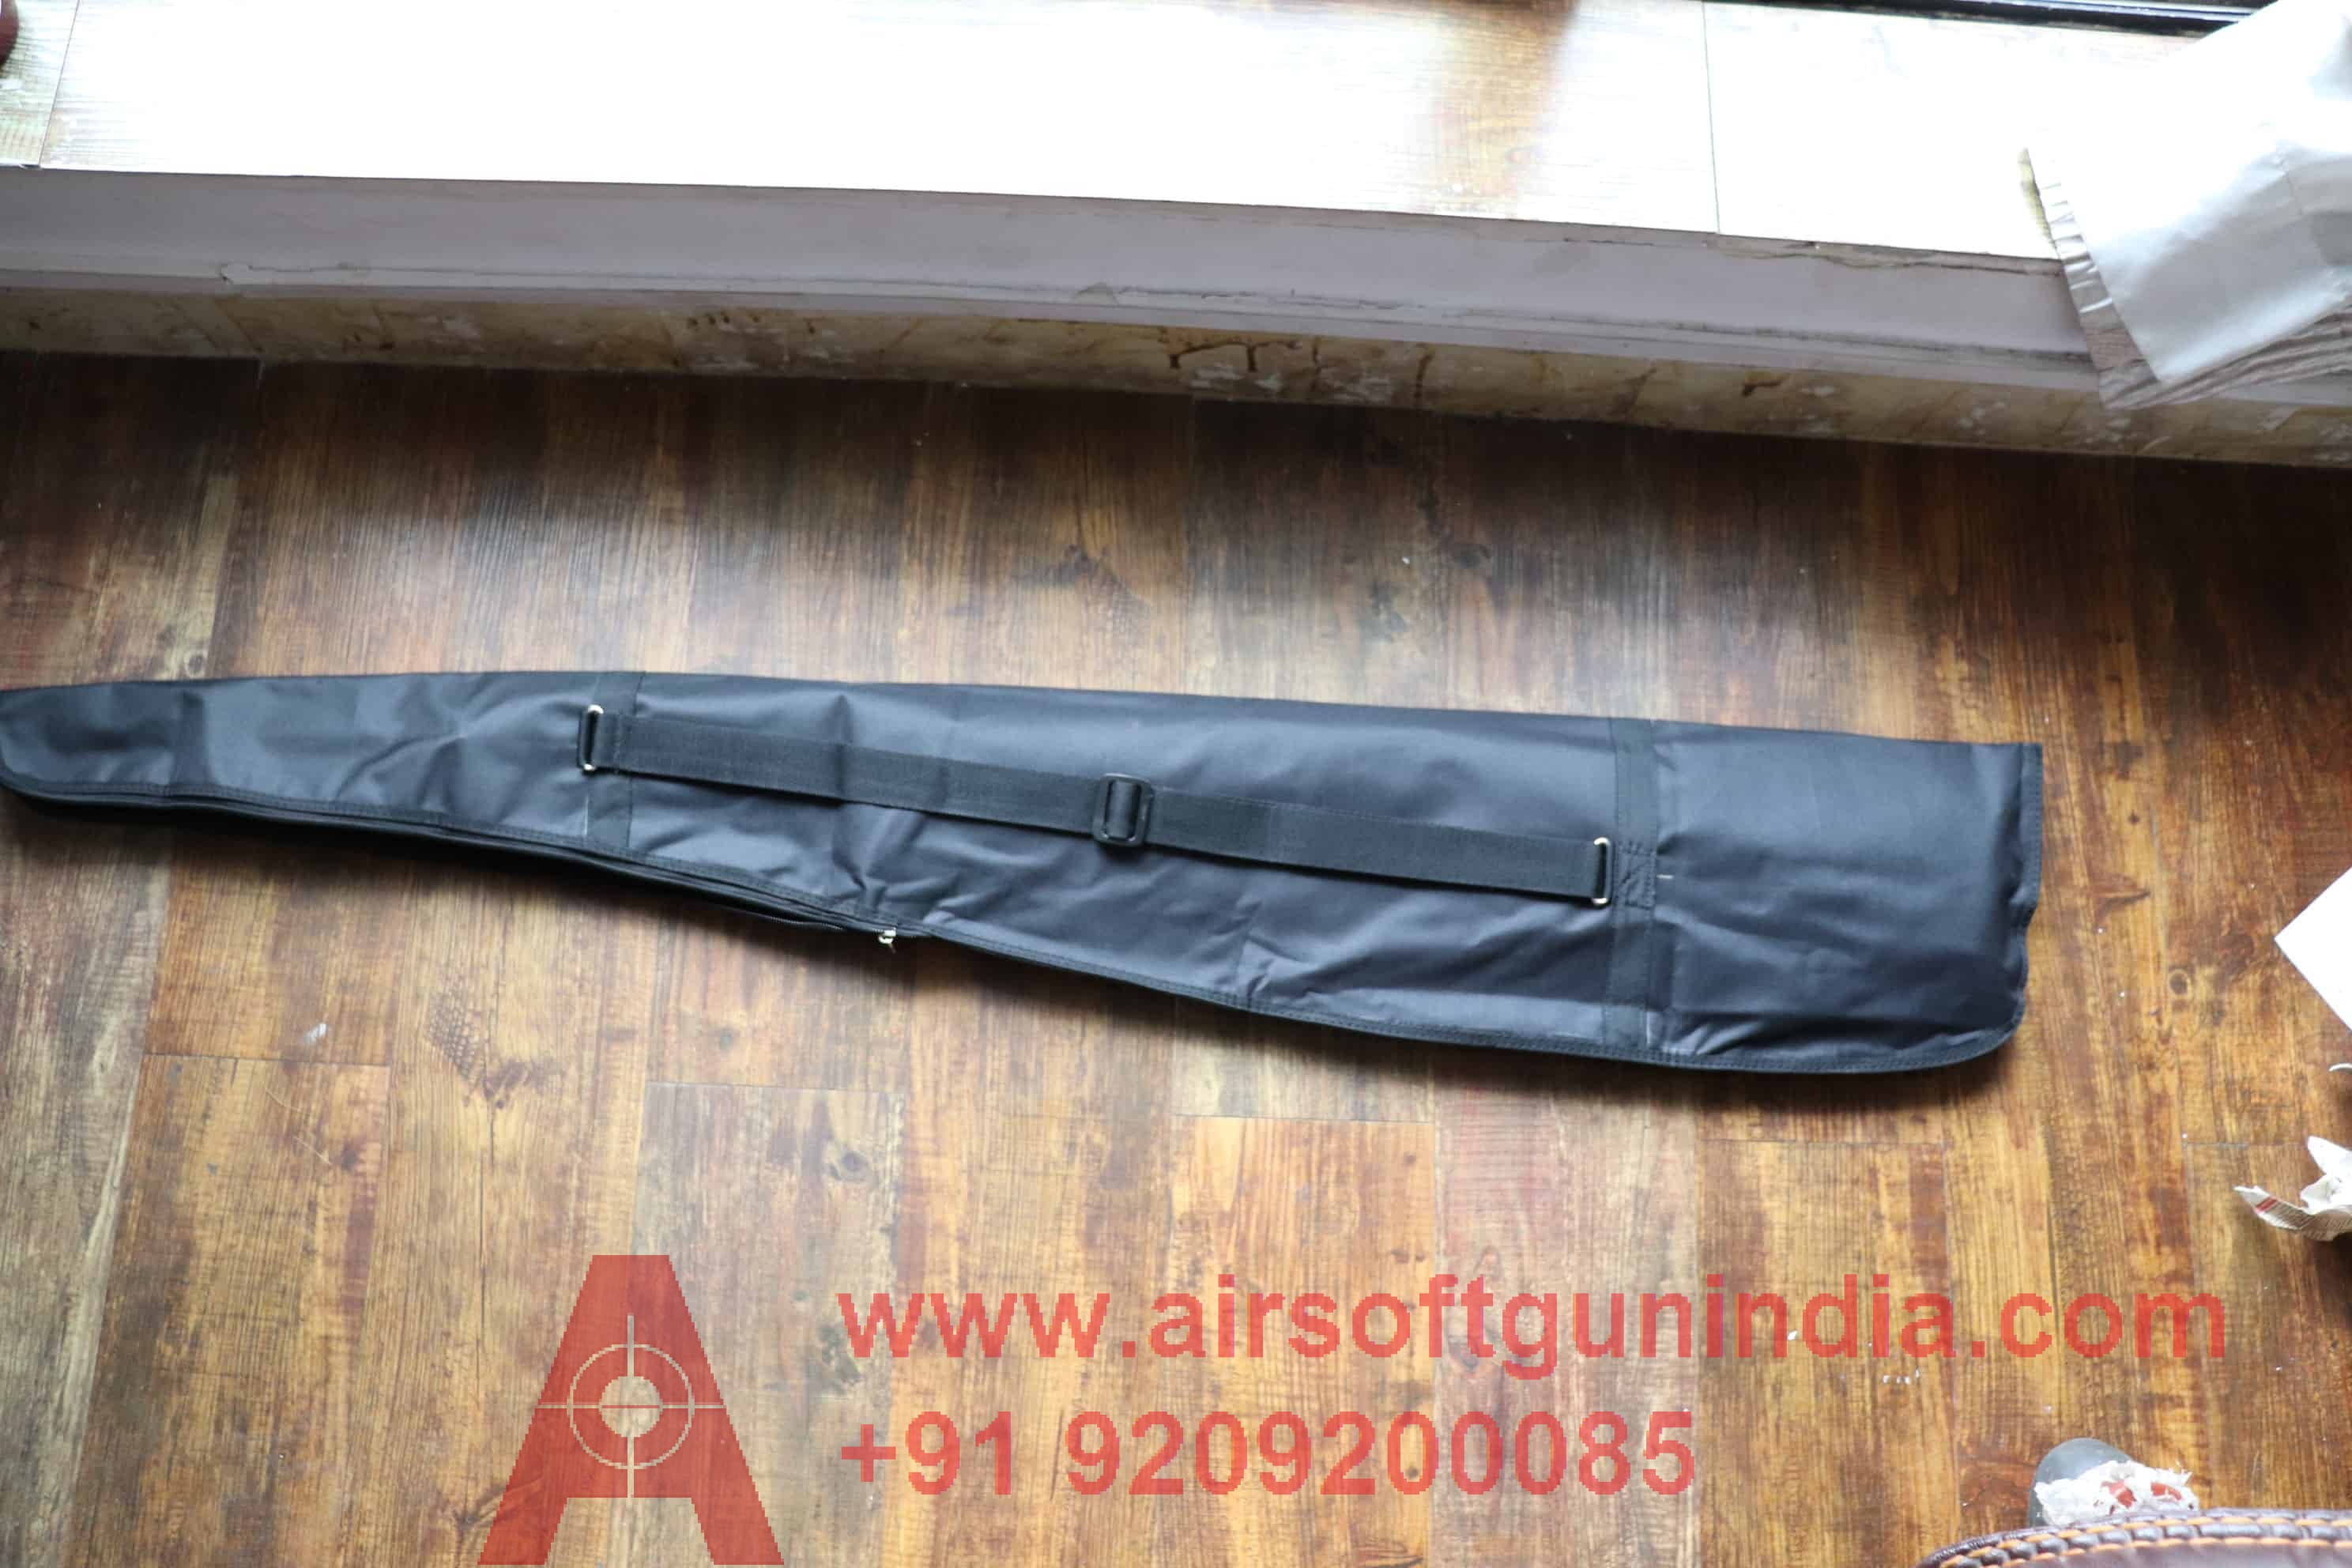 RIFLE COVER FOR AIR RIFLE IN INDIA